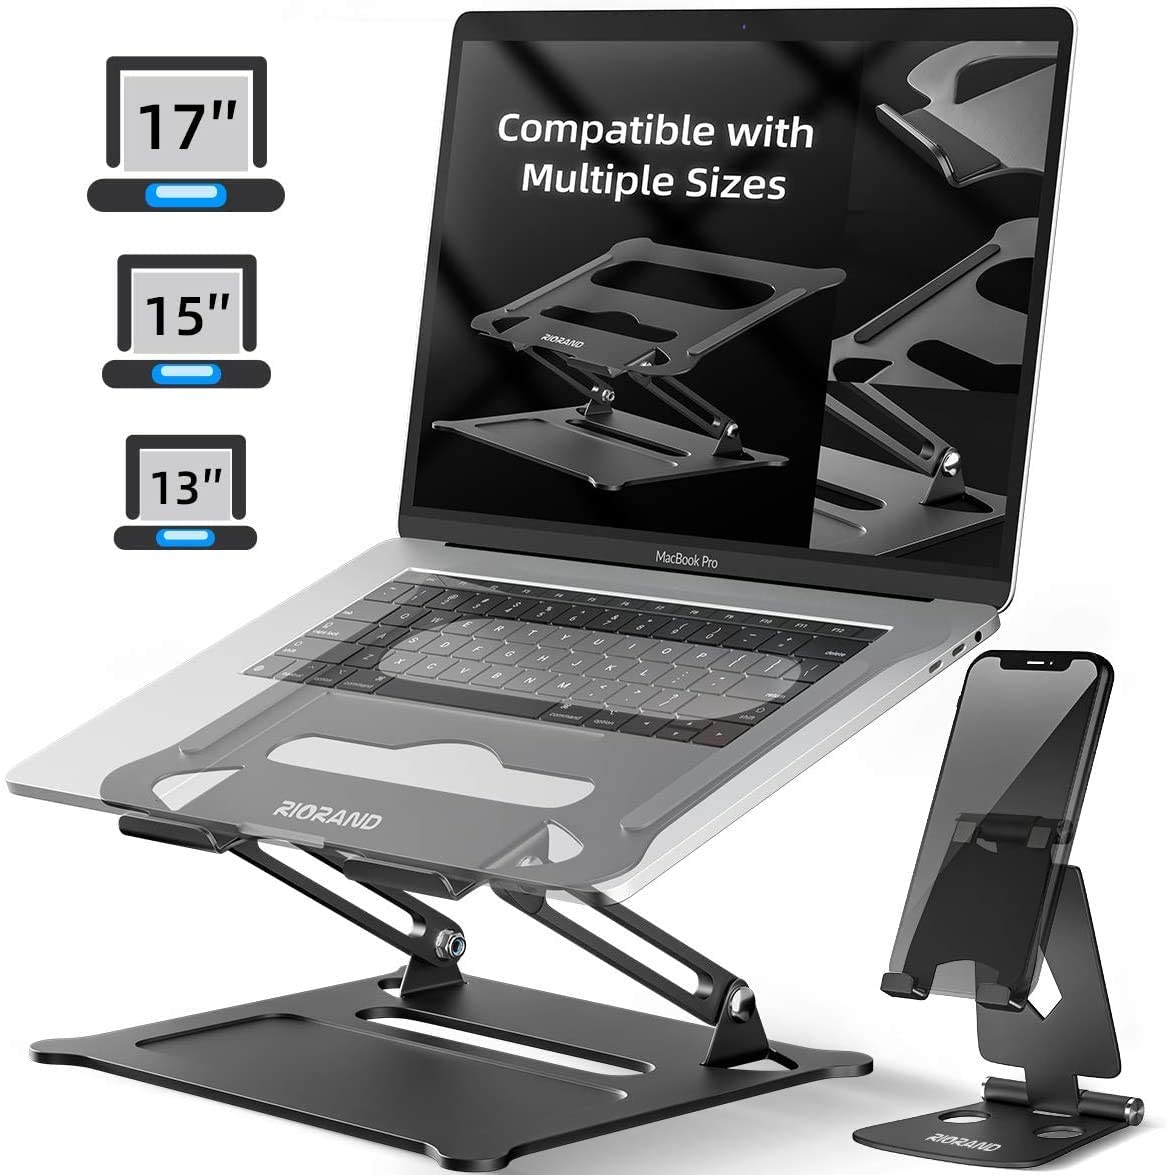 Portable Foldable Stand with MacBook Air Pro Lenovo Light Weight Aluminum Up to 17 Silver Ergonomic Adjustable Notebook Stand Riser with Vents Laptop Stand Holder Dell HP